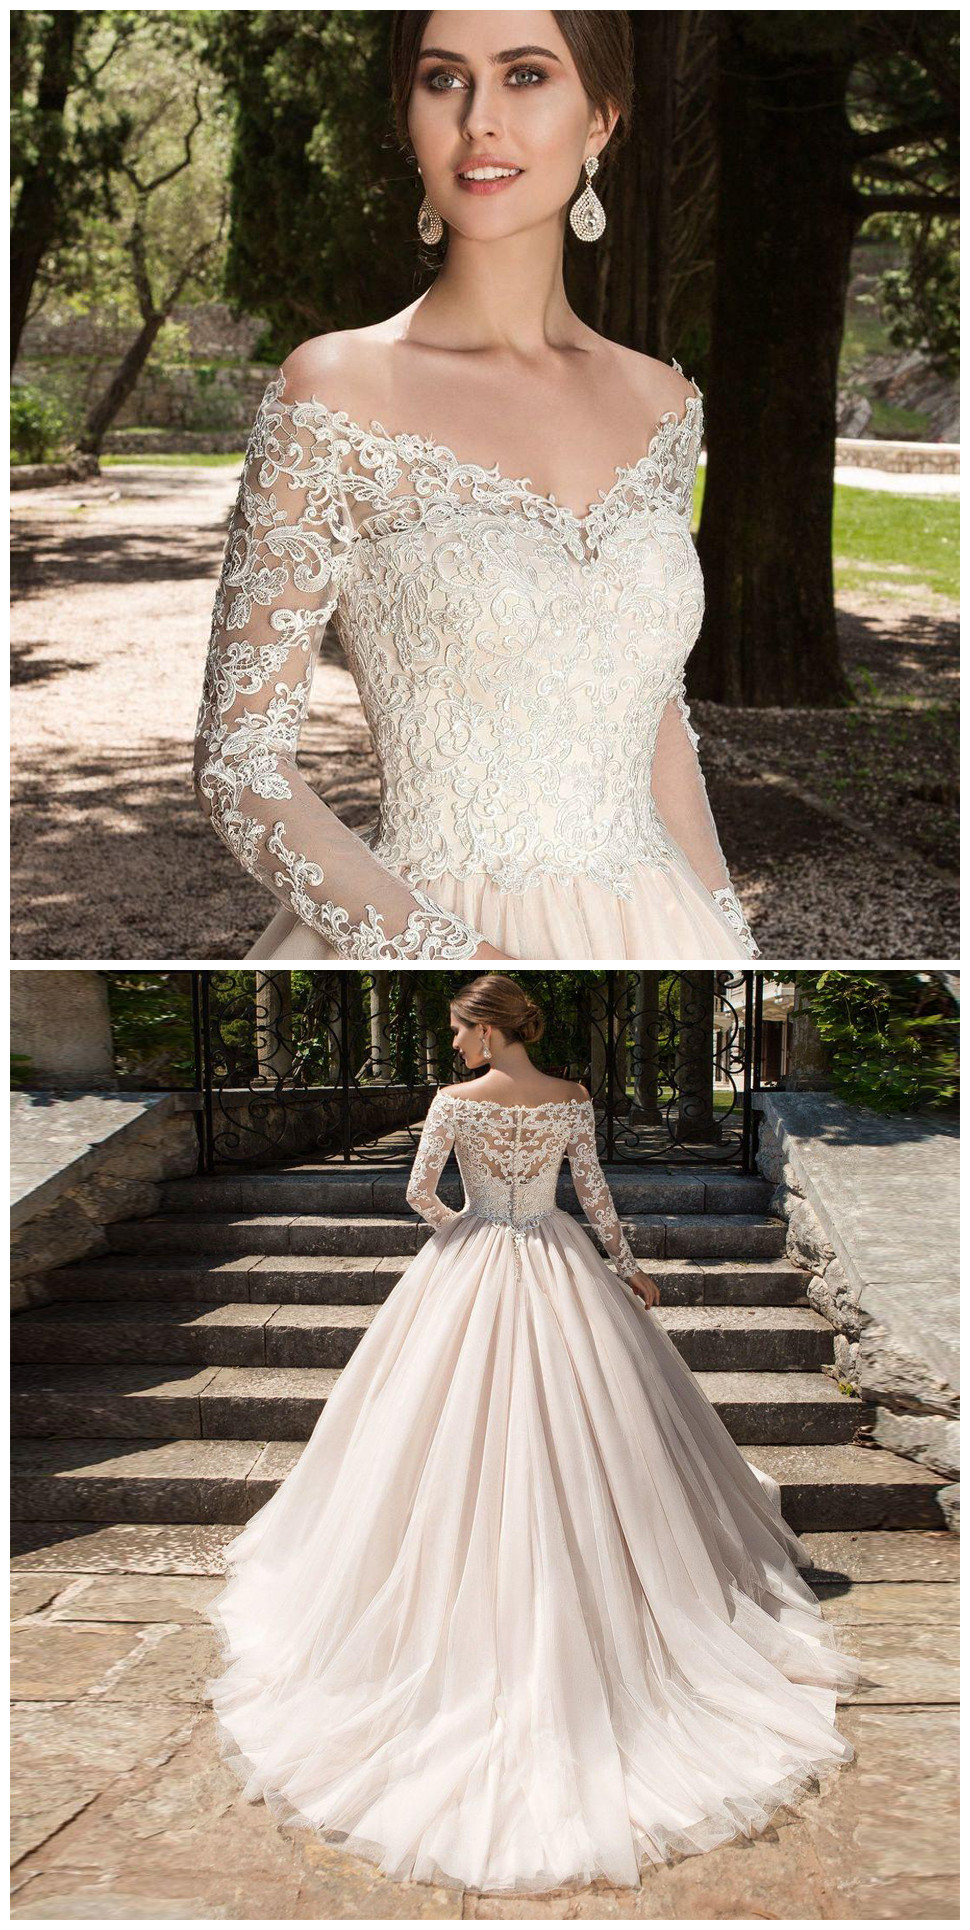 a40bbb0d46 Sexy V neck wedding dresses Long Sleeves wedding dress Country western  Vintage wedding gowns Custom made